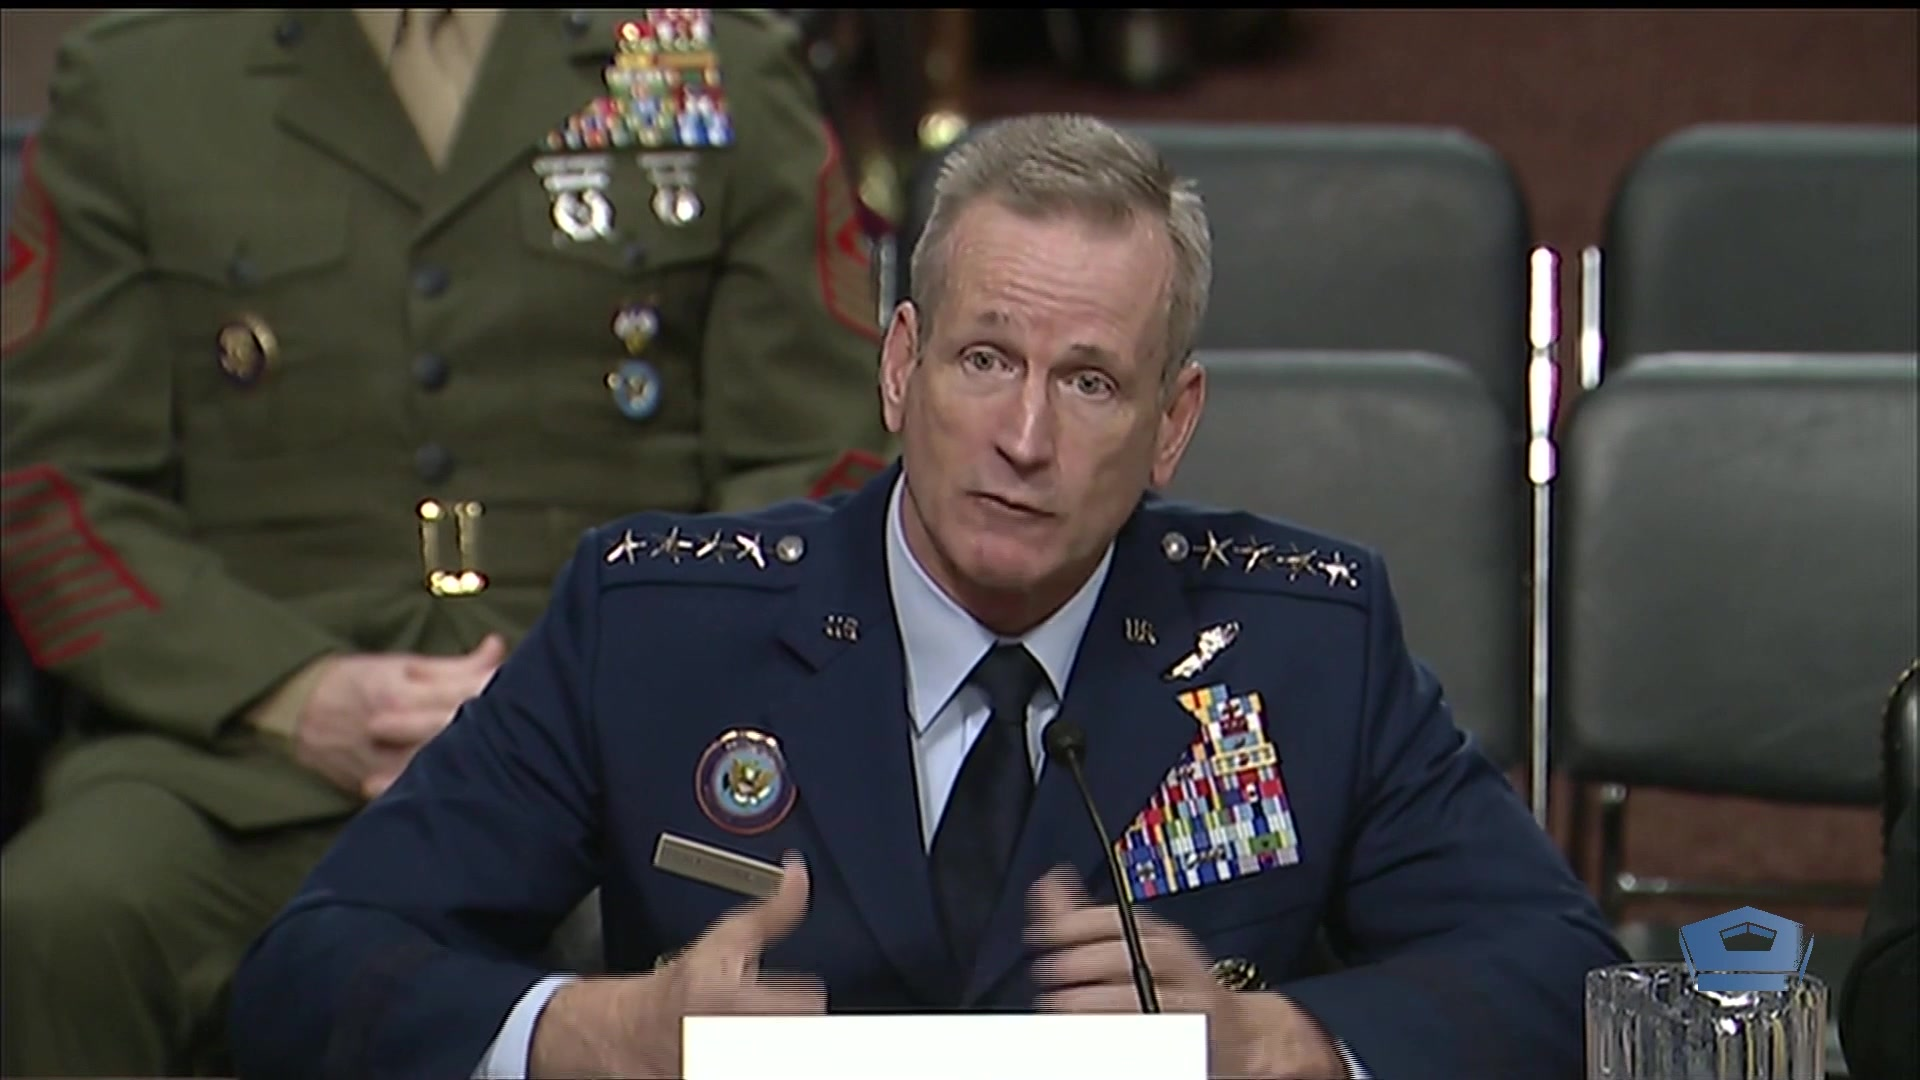 An Air Force general talks while seated in front of a microphone.